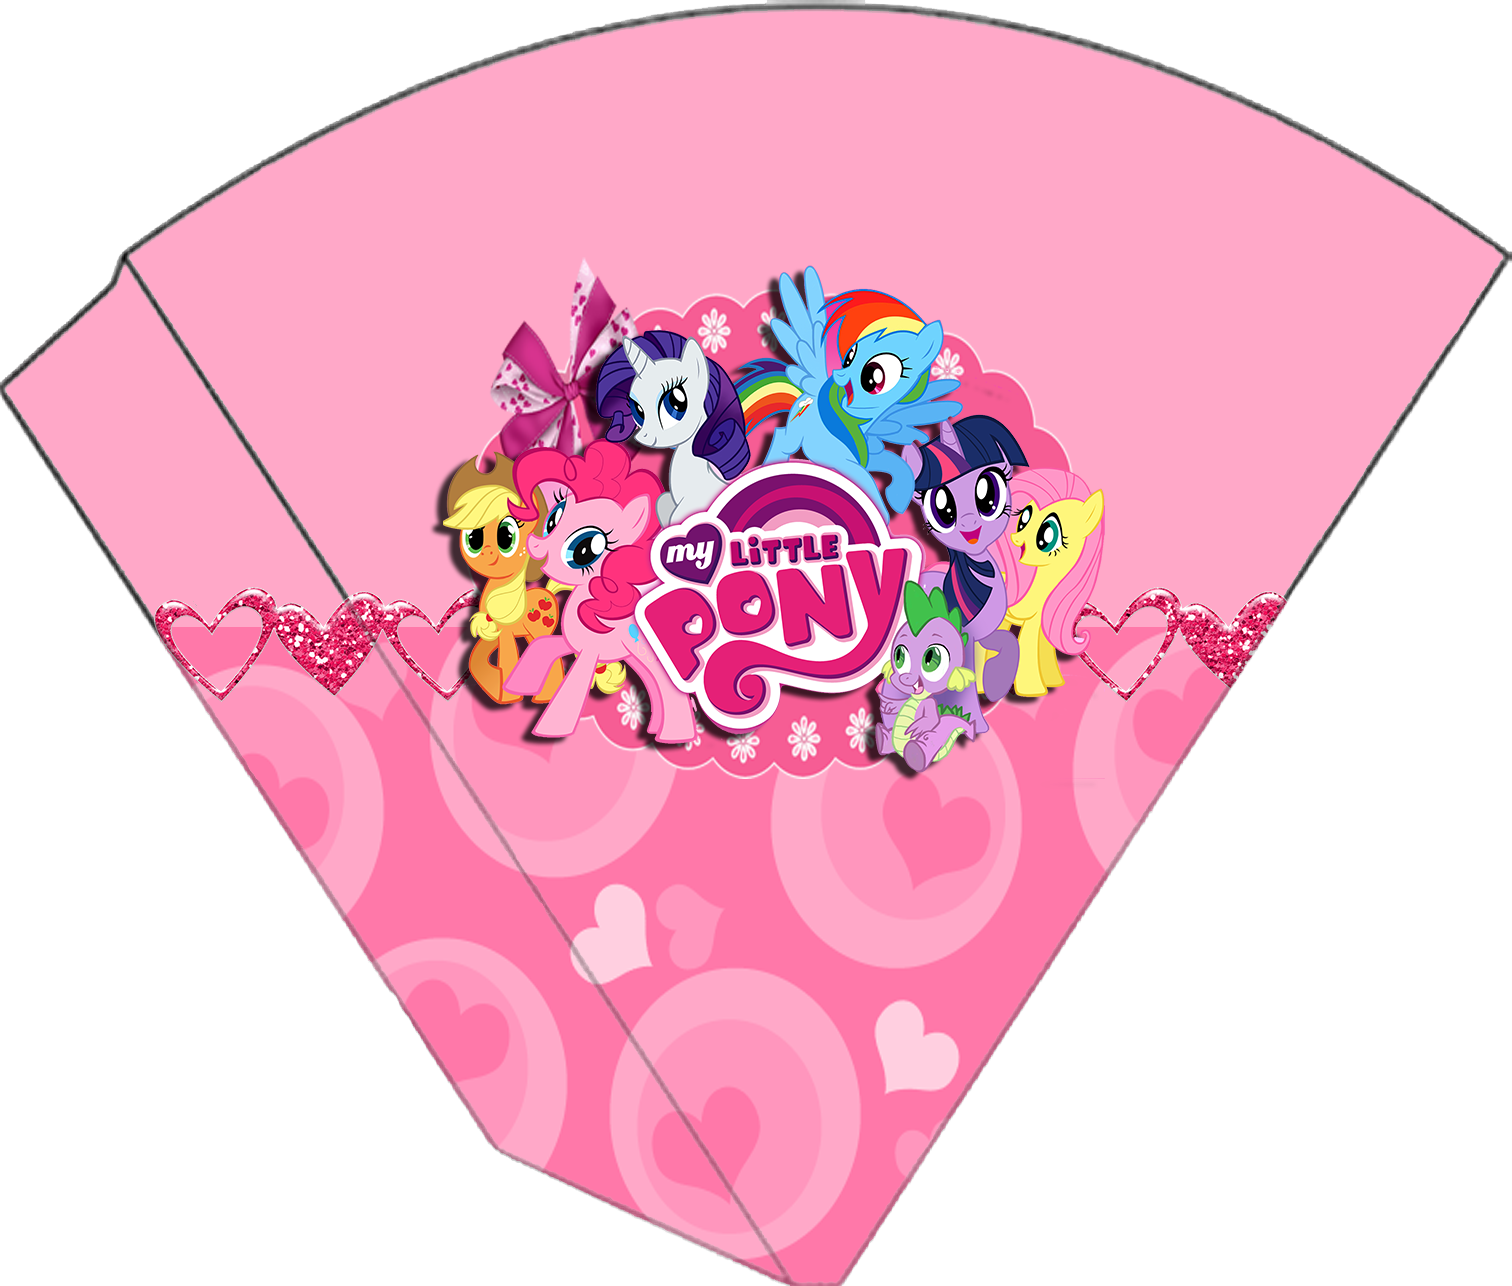 Para conos de My Little Pony.